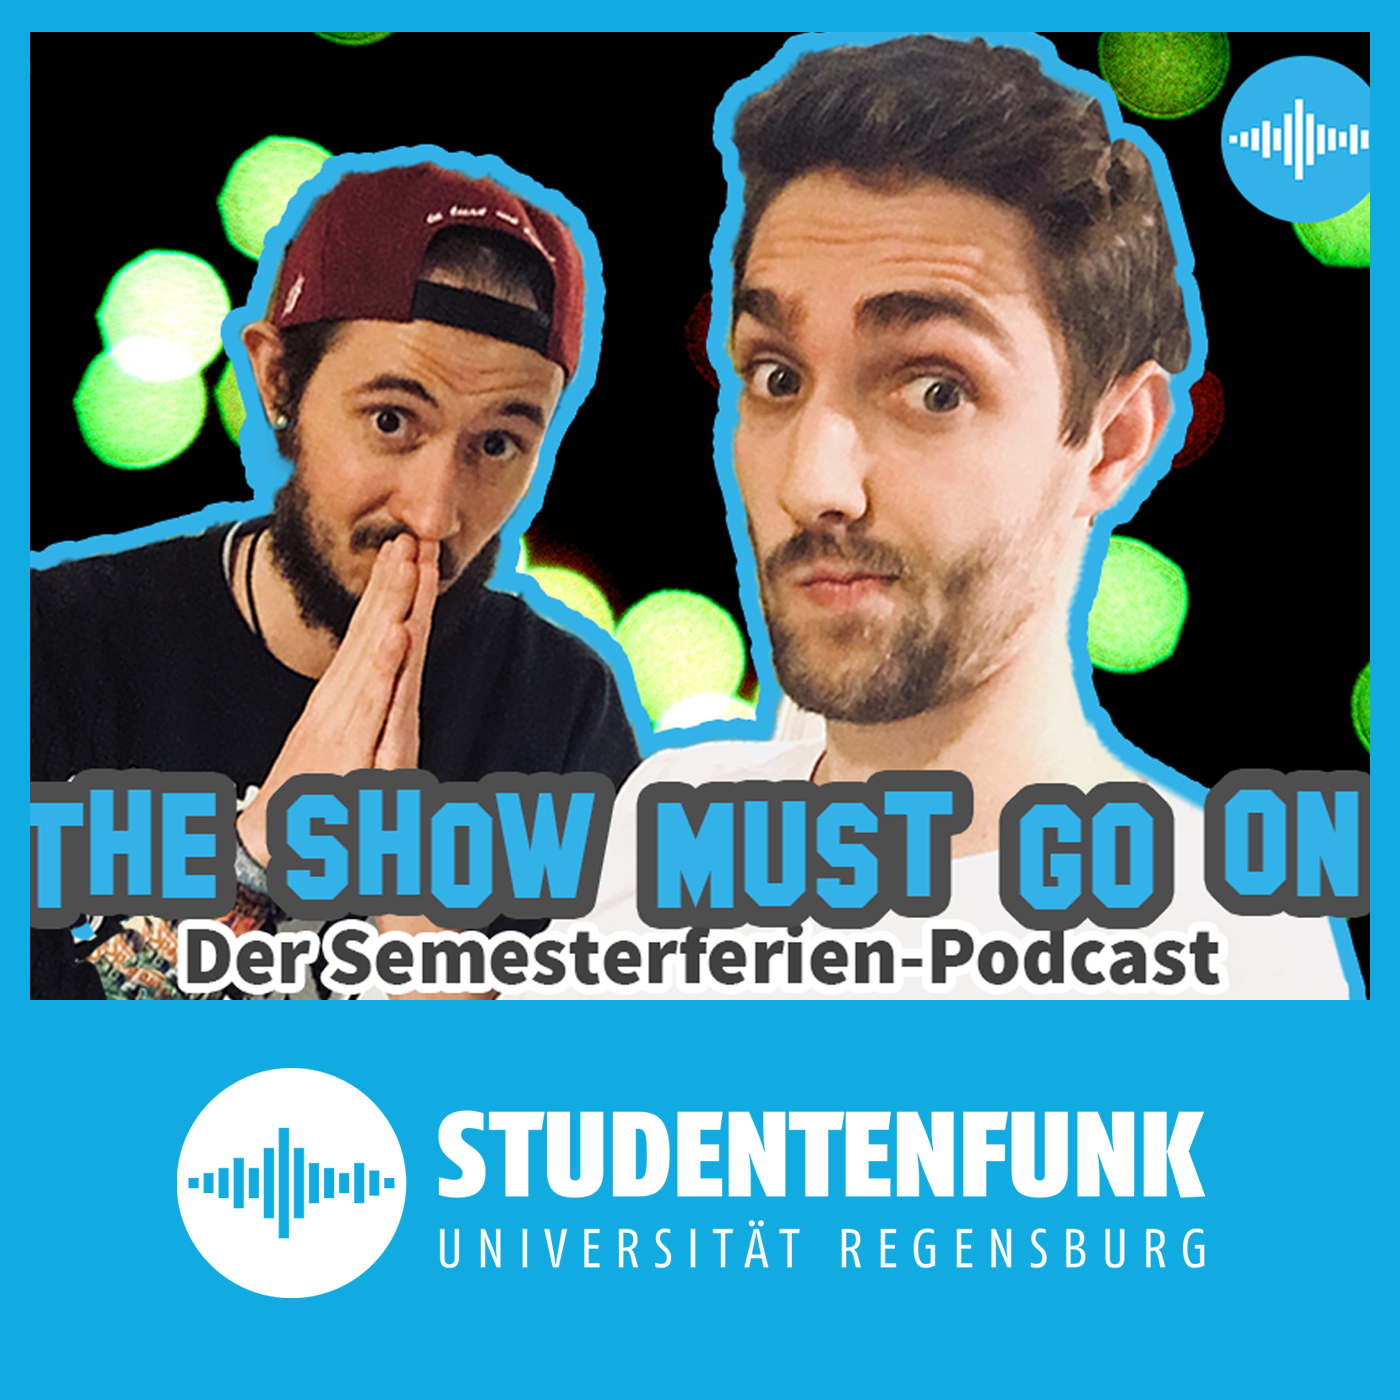 The Show Must Go On – Studentenfunk Regensburg